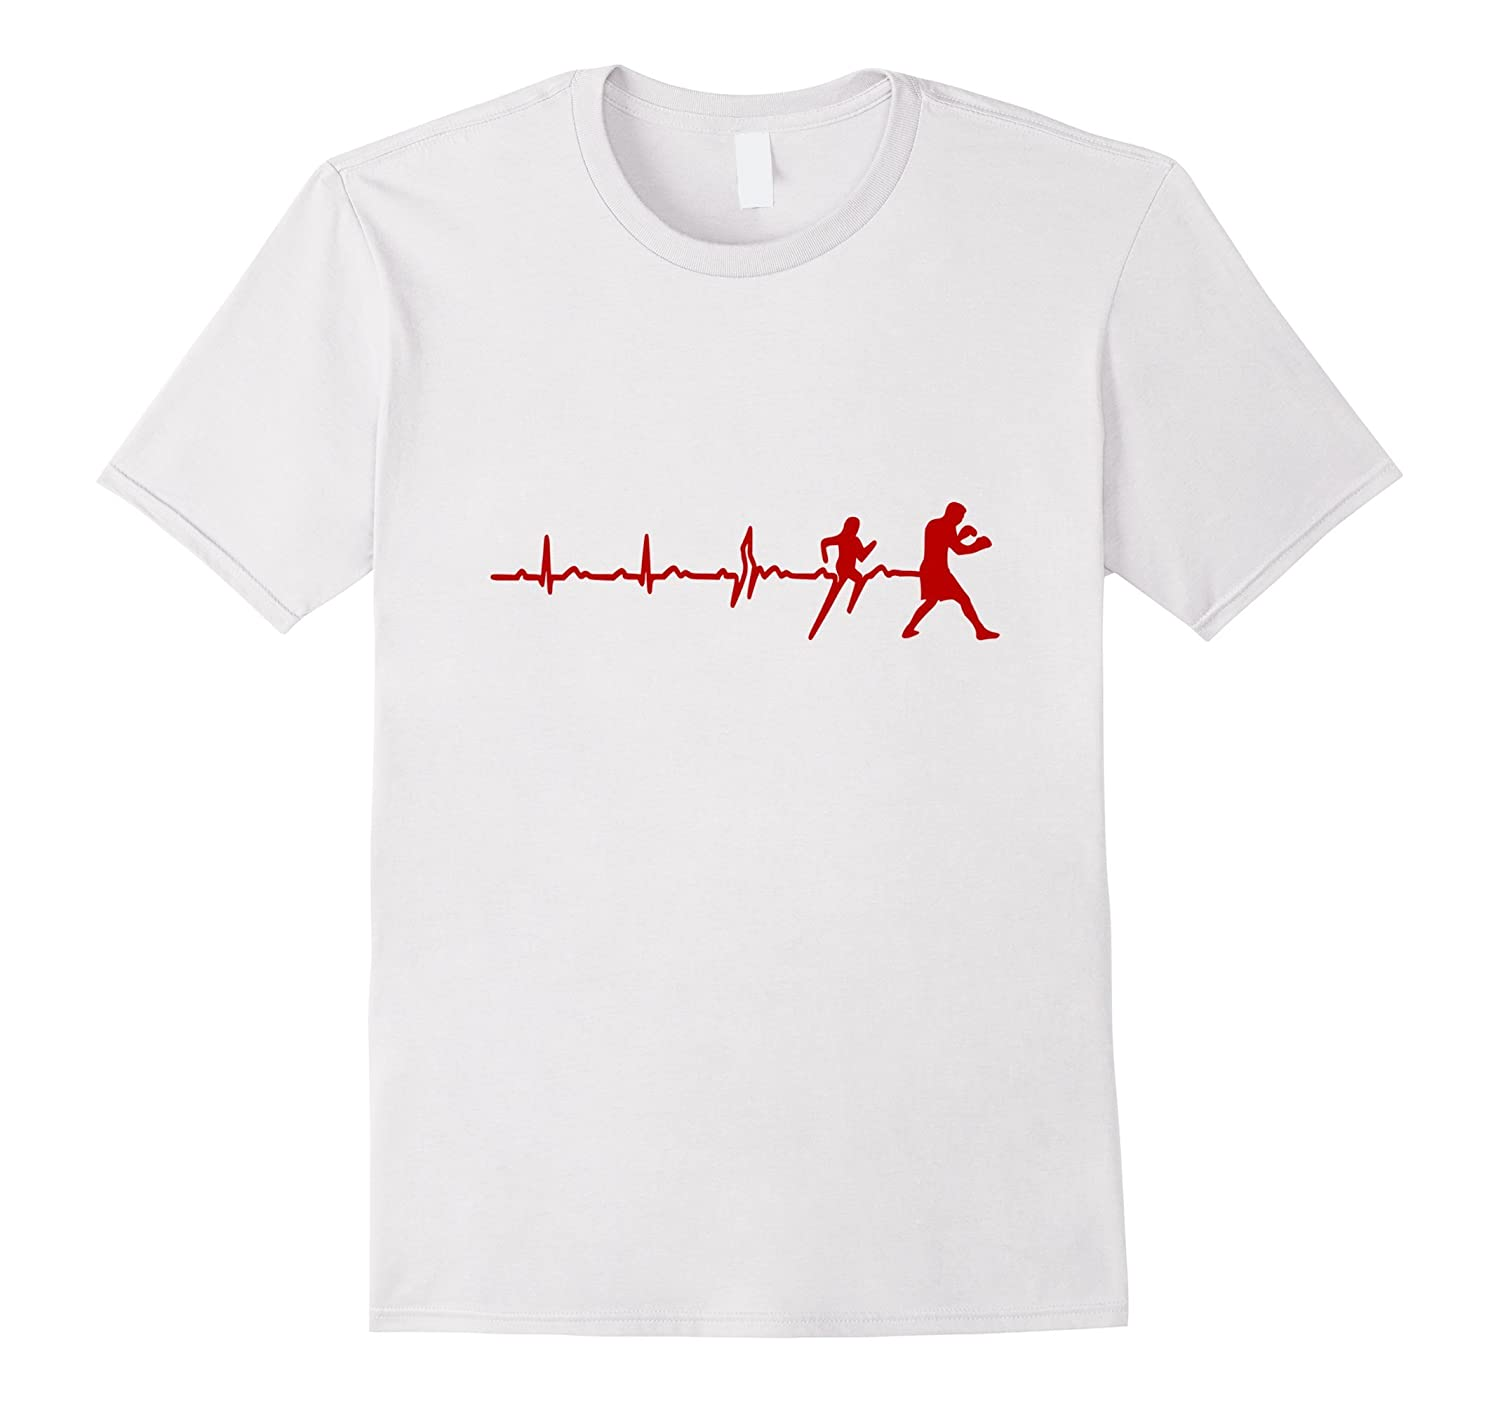 Awesome Boxing T-Shirt - Mens & Womens & Kids Sizes-ah my shirt one gift